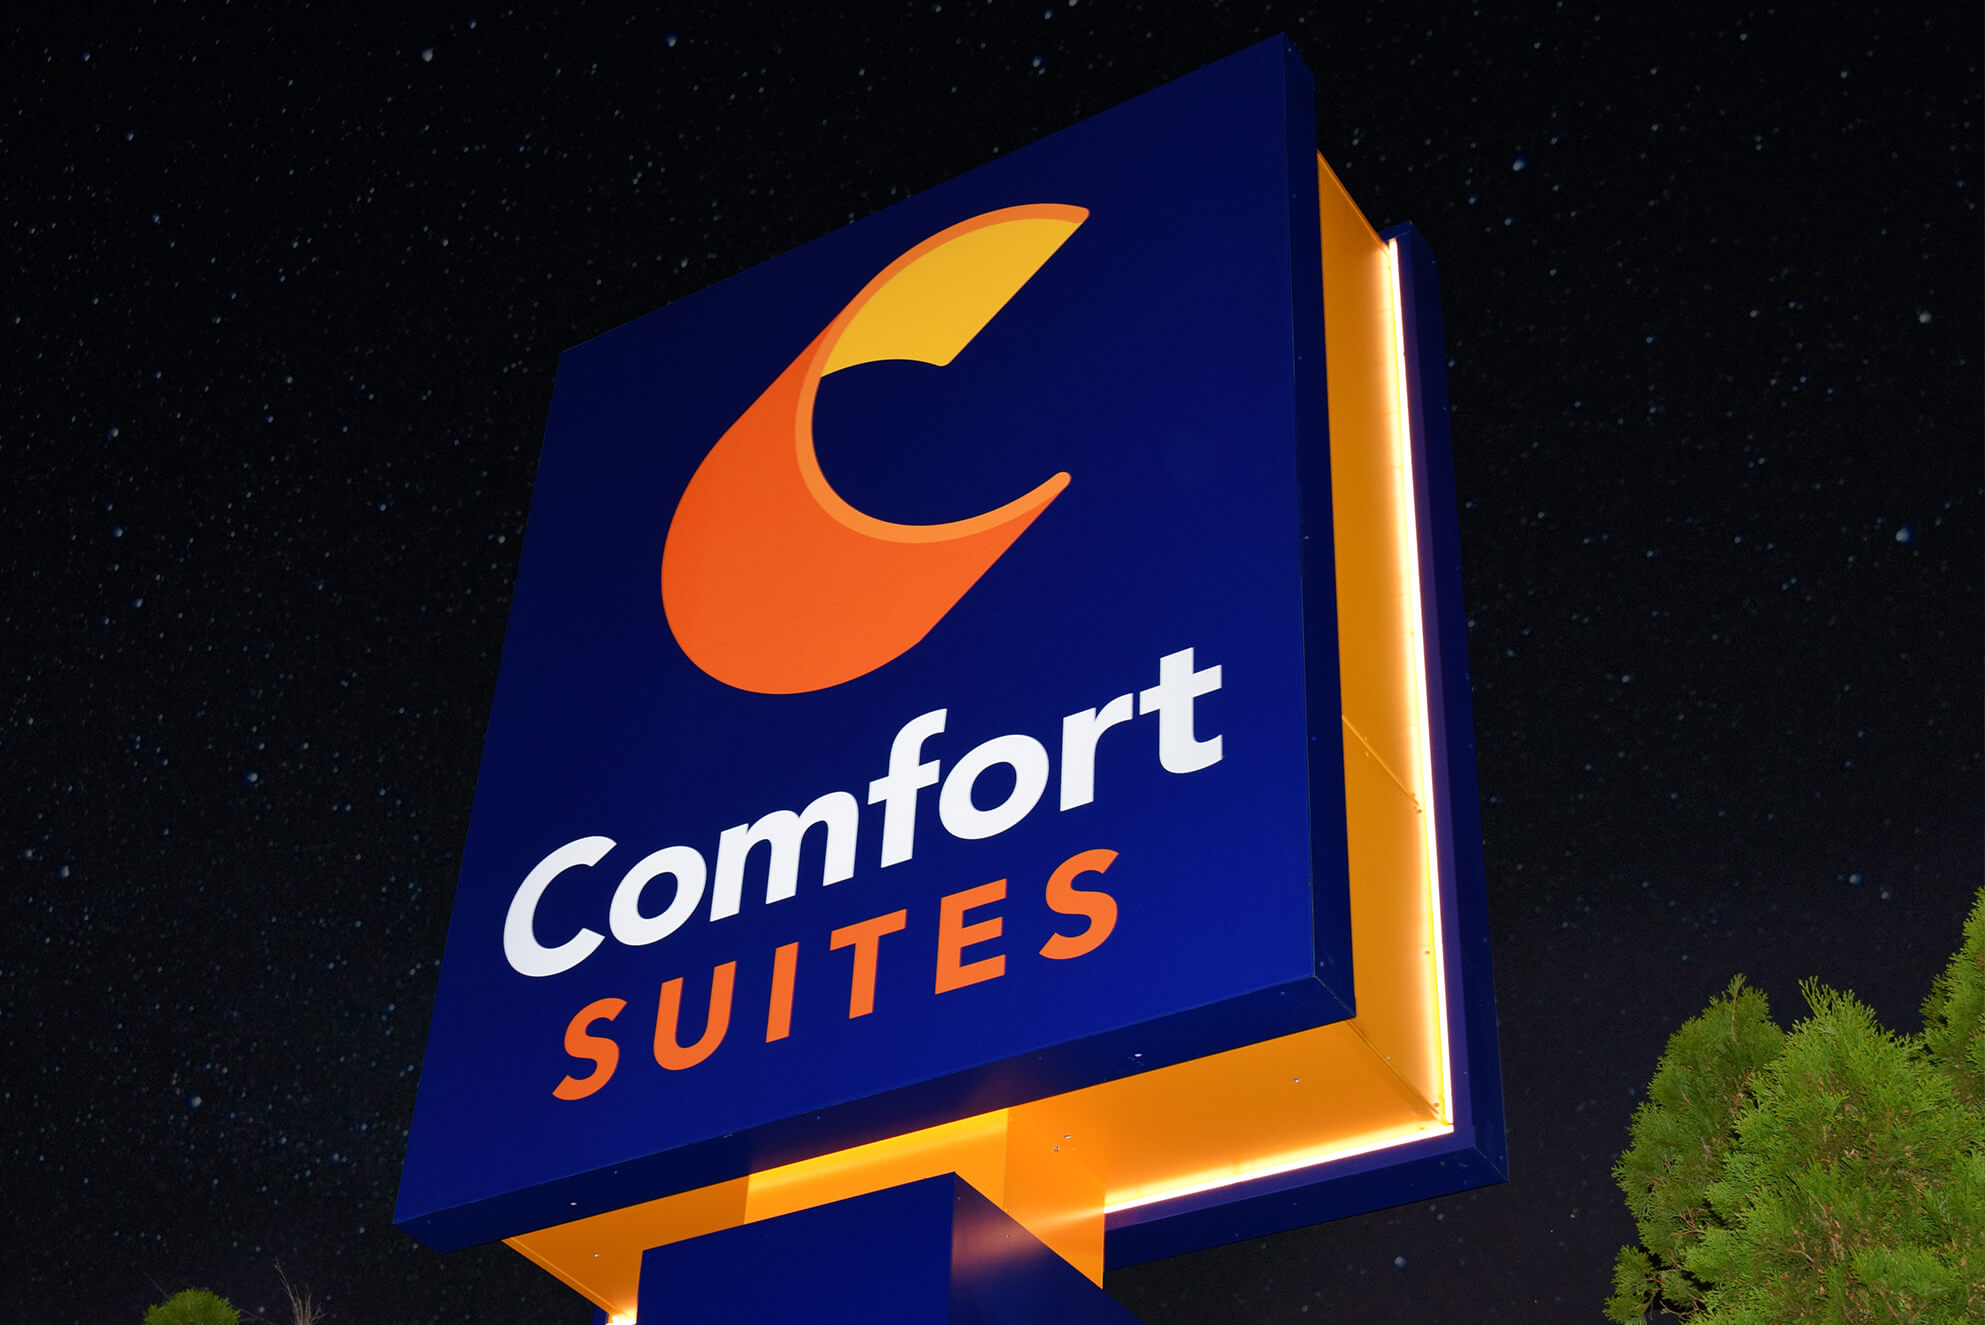 Excellent craftsmanship went into this pylon sign for Comfort Suites with dynamic LED illumination.